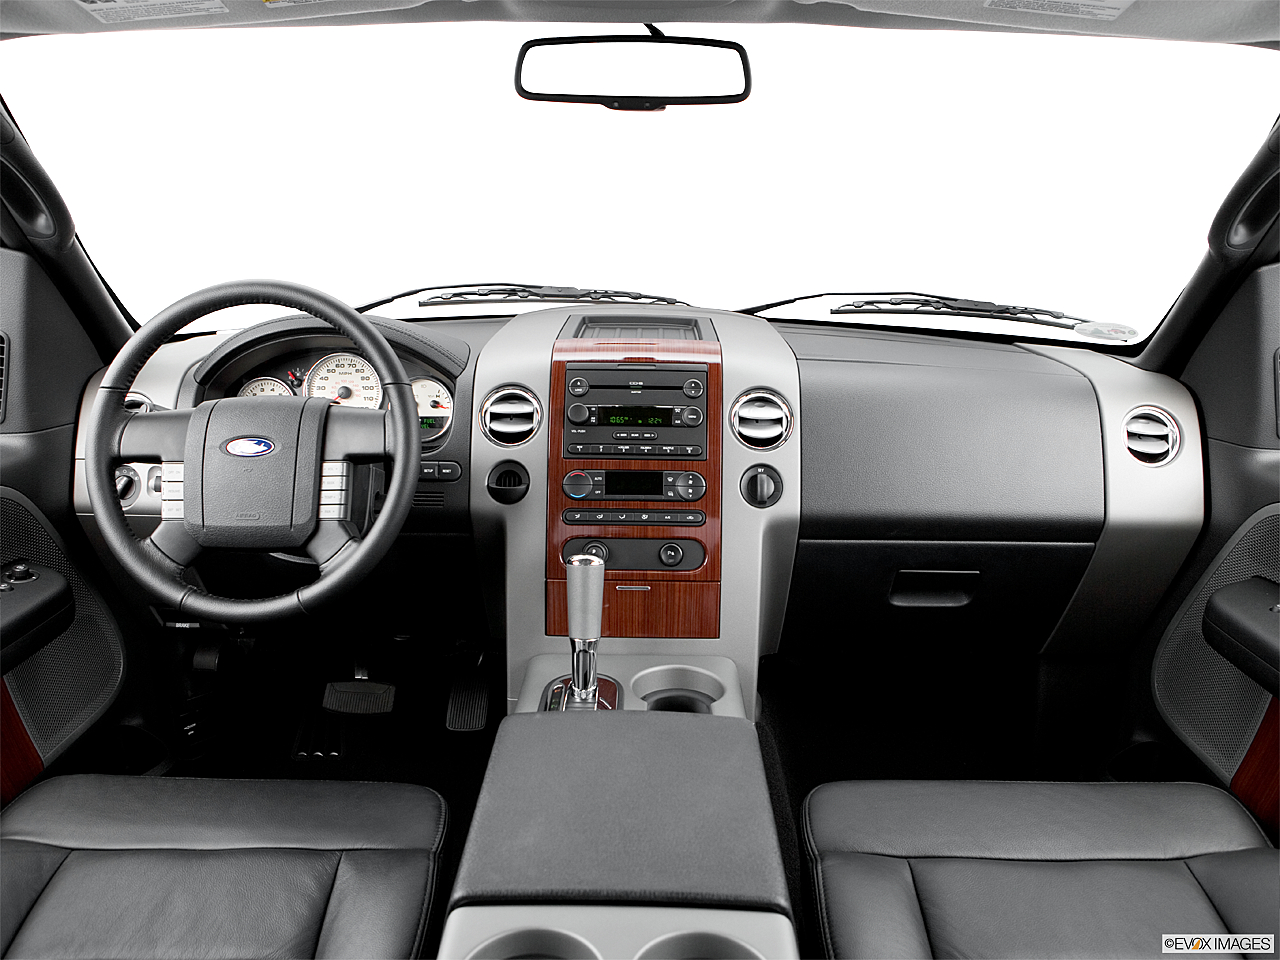 2006 Ford F-150 Lariat, centered wide dash shot